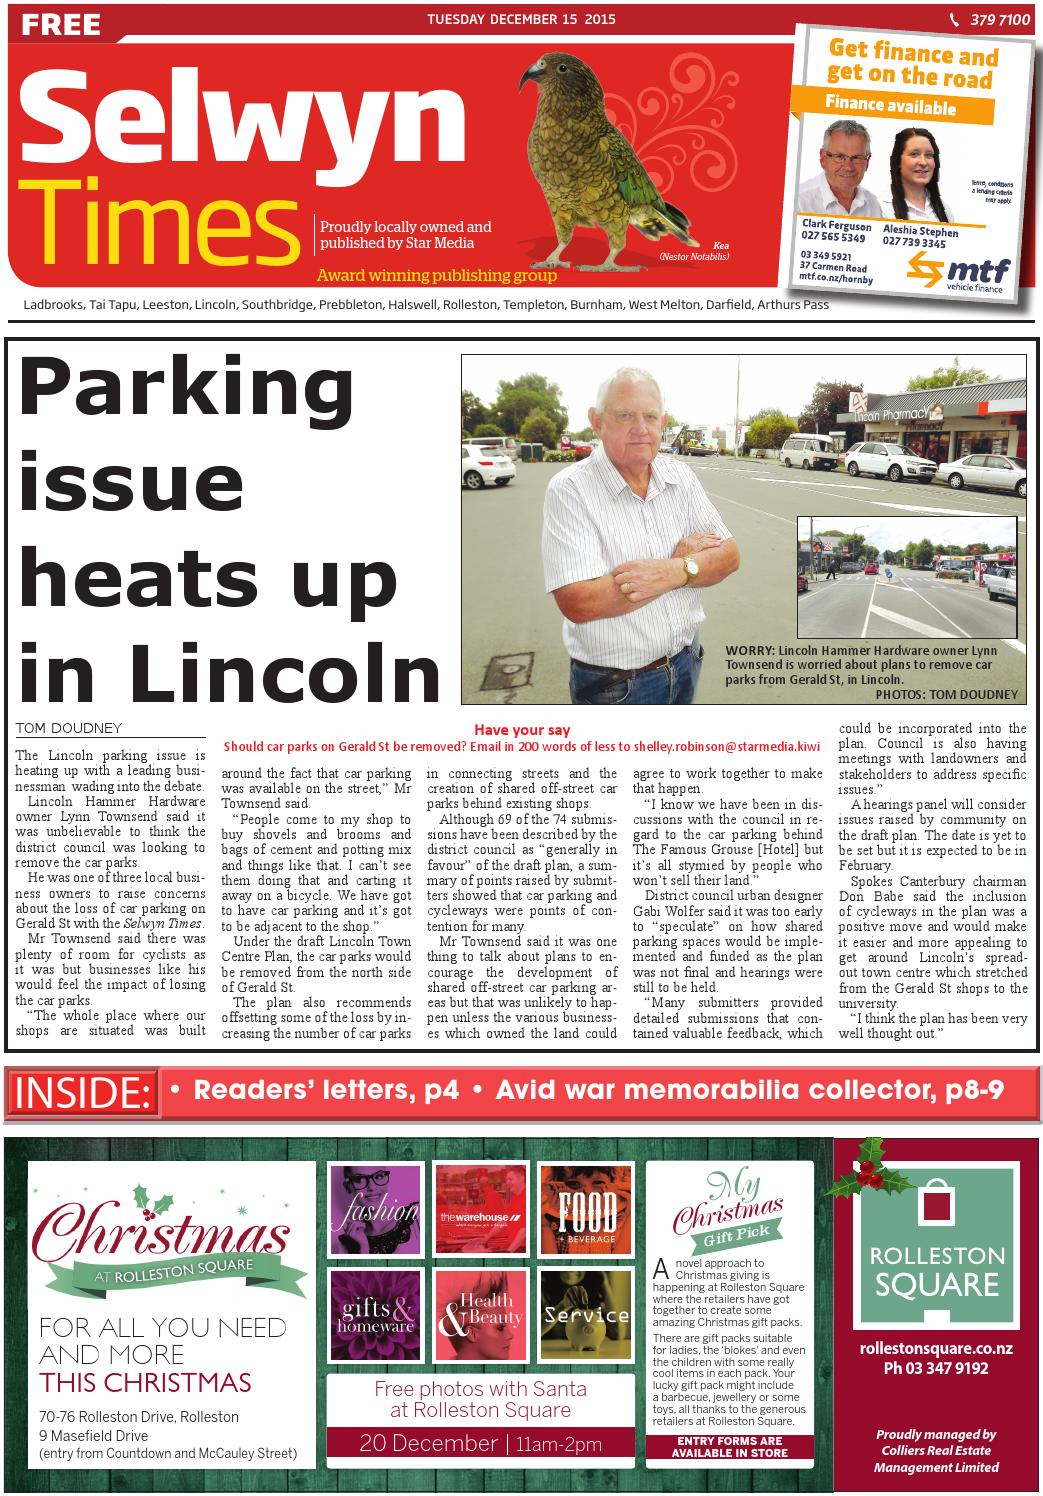 Selwyn Times 15-12-15 by Local Newspapers - issuu